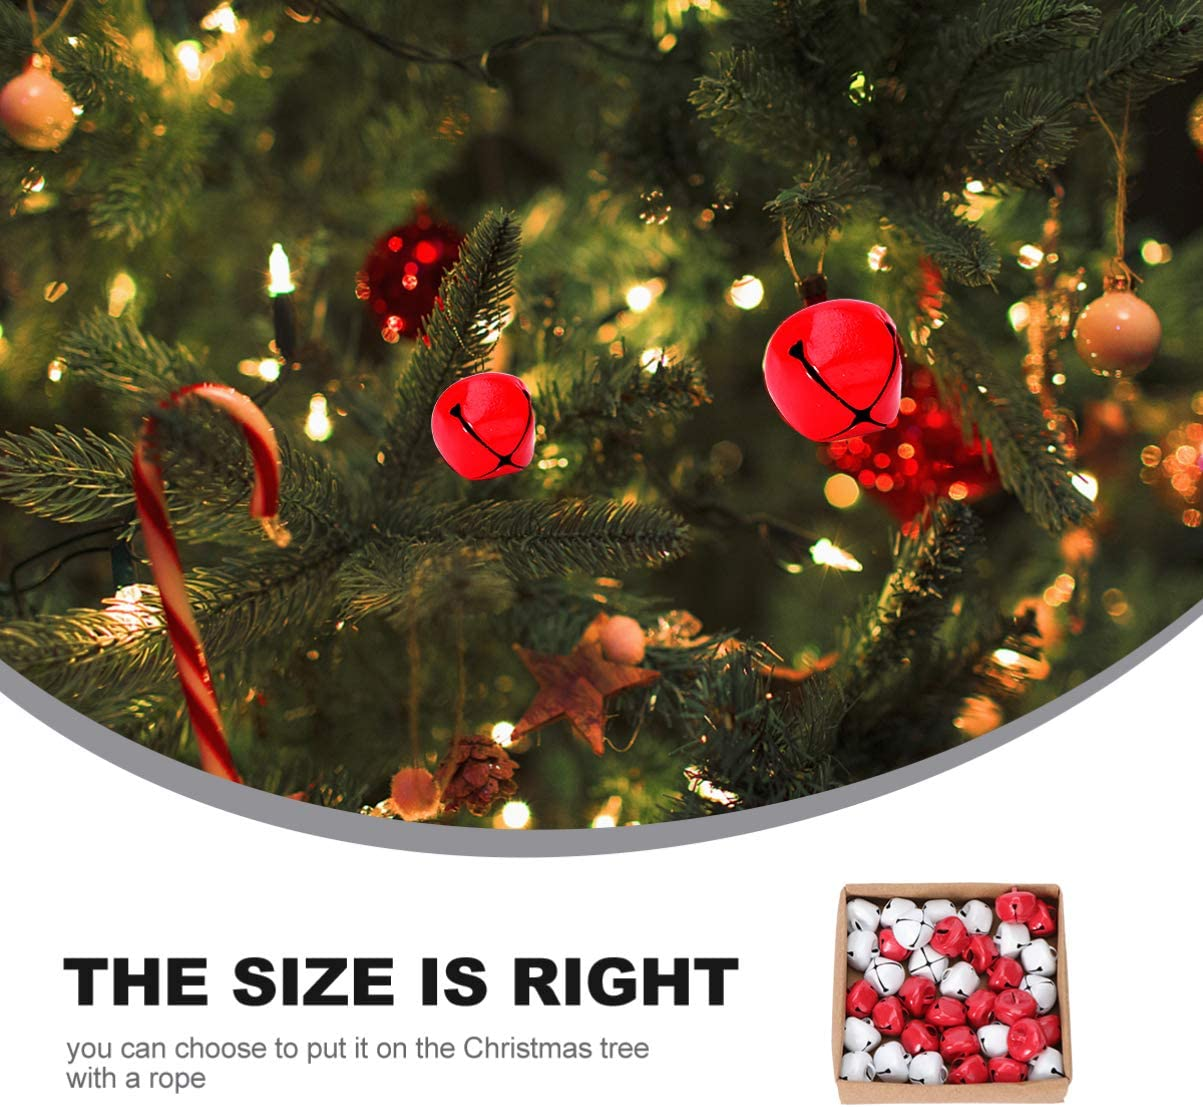 PRETYZOOM 36Pcs Jingle Bell Ornament Red White Mixed Set Sleigh Bell Decorations Christmas Hanging Decorations for Party Home Indoor